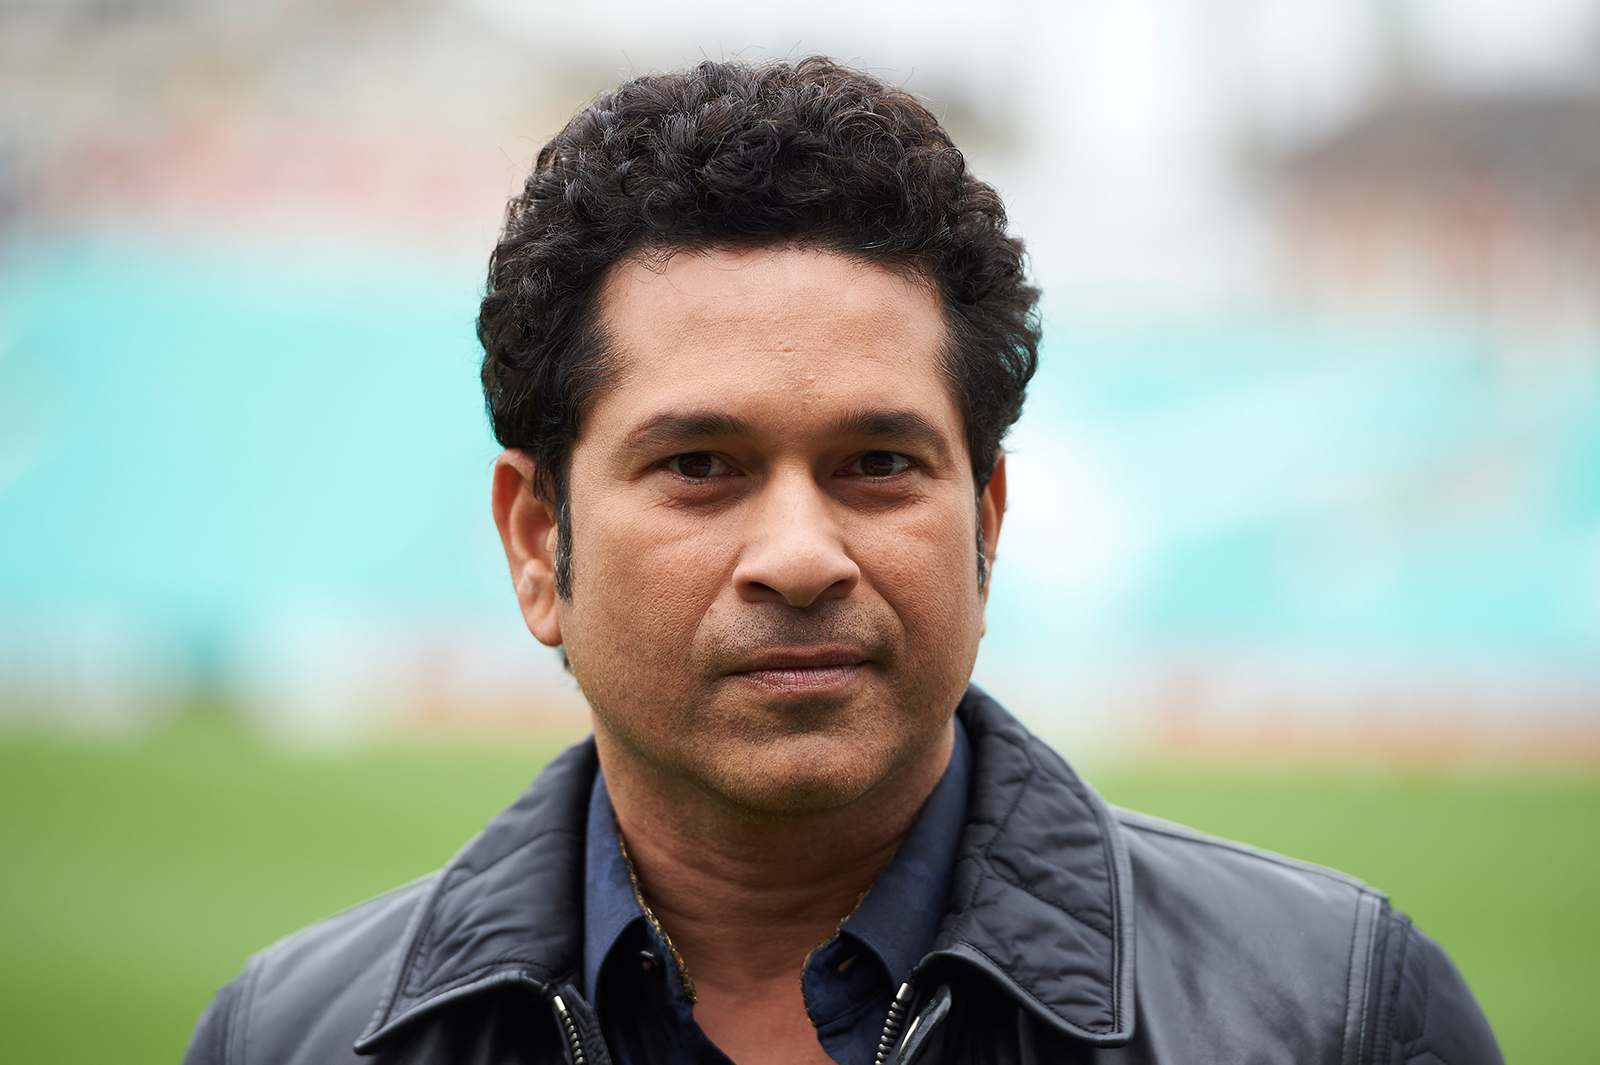 Indian cricket legend Sachin Teldulkar poses for a photograph at the Oval cricket ground in south London , on May 6, 2017.